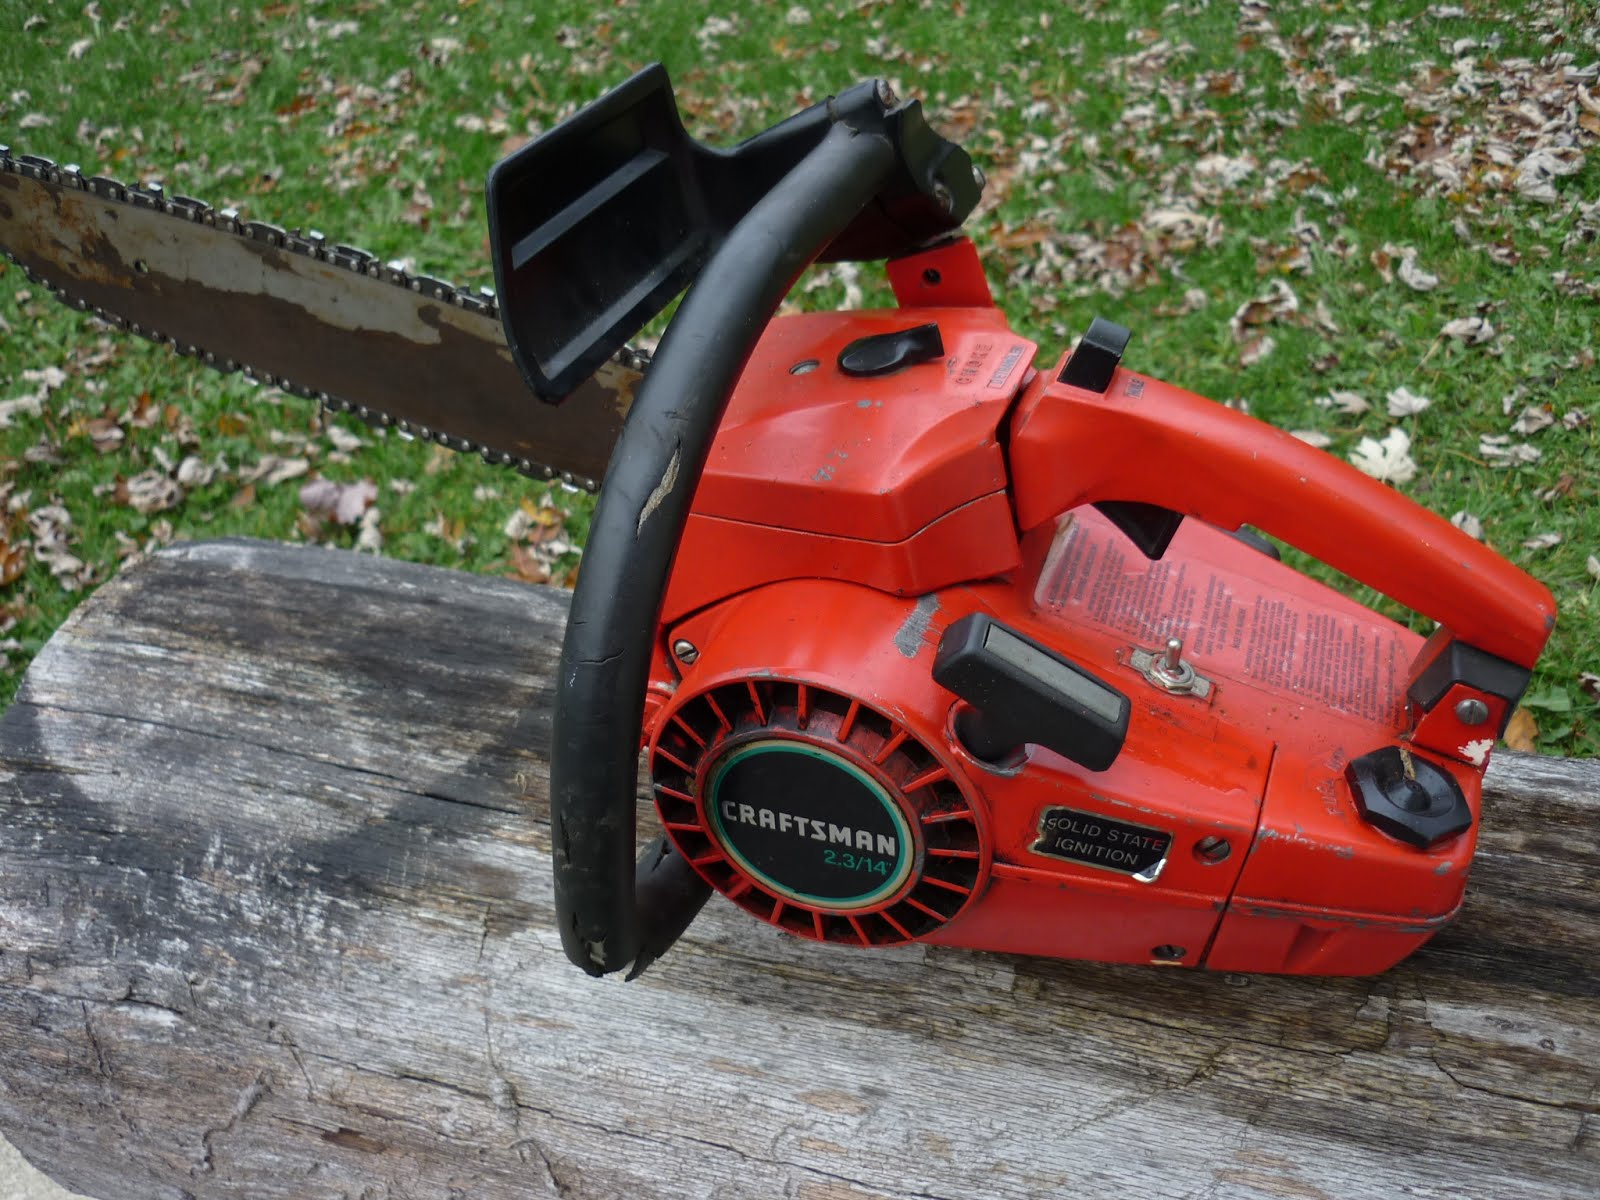 Who makes craftsman chainsaw are they any good feb 2018 the history and quality of craftsman chainsaws greentooth Image collections